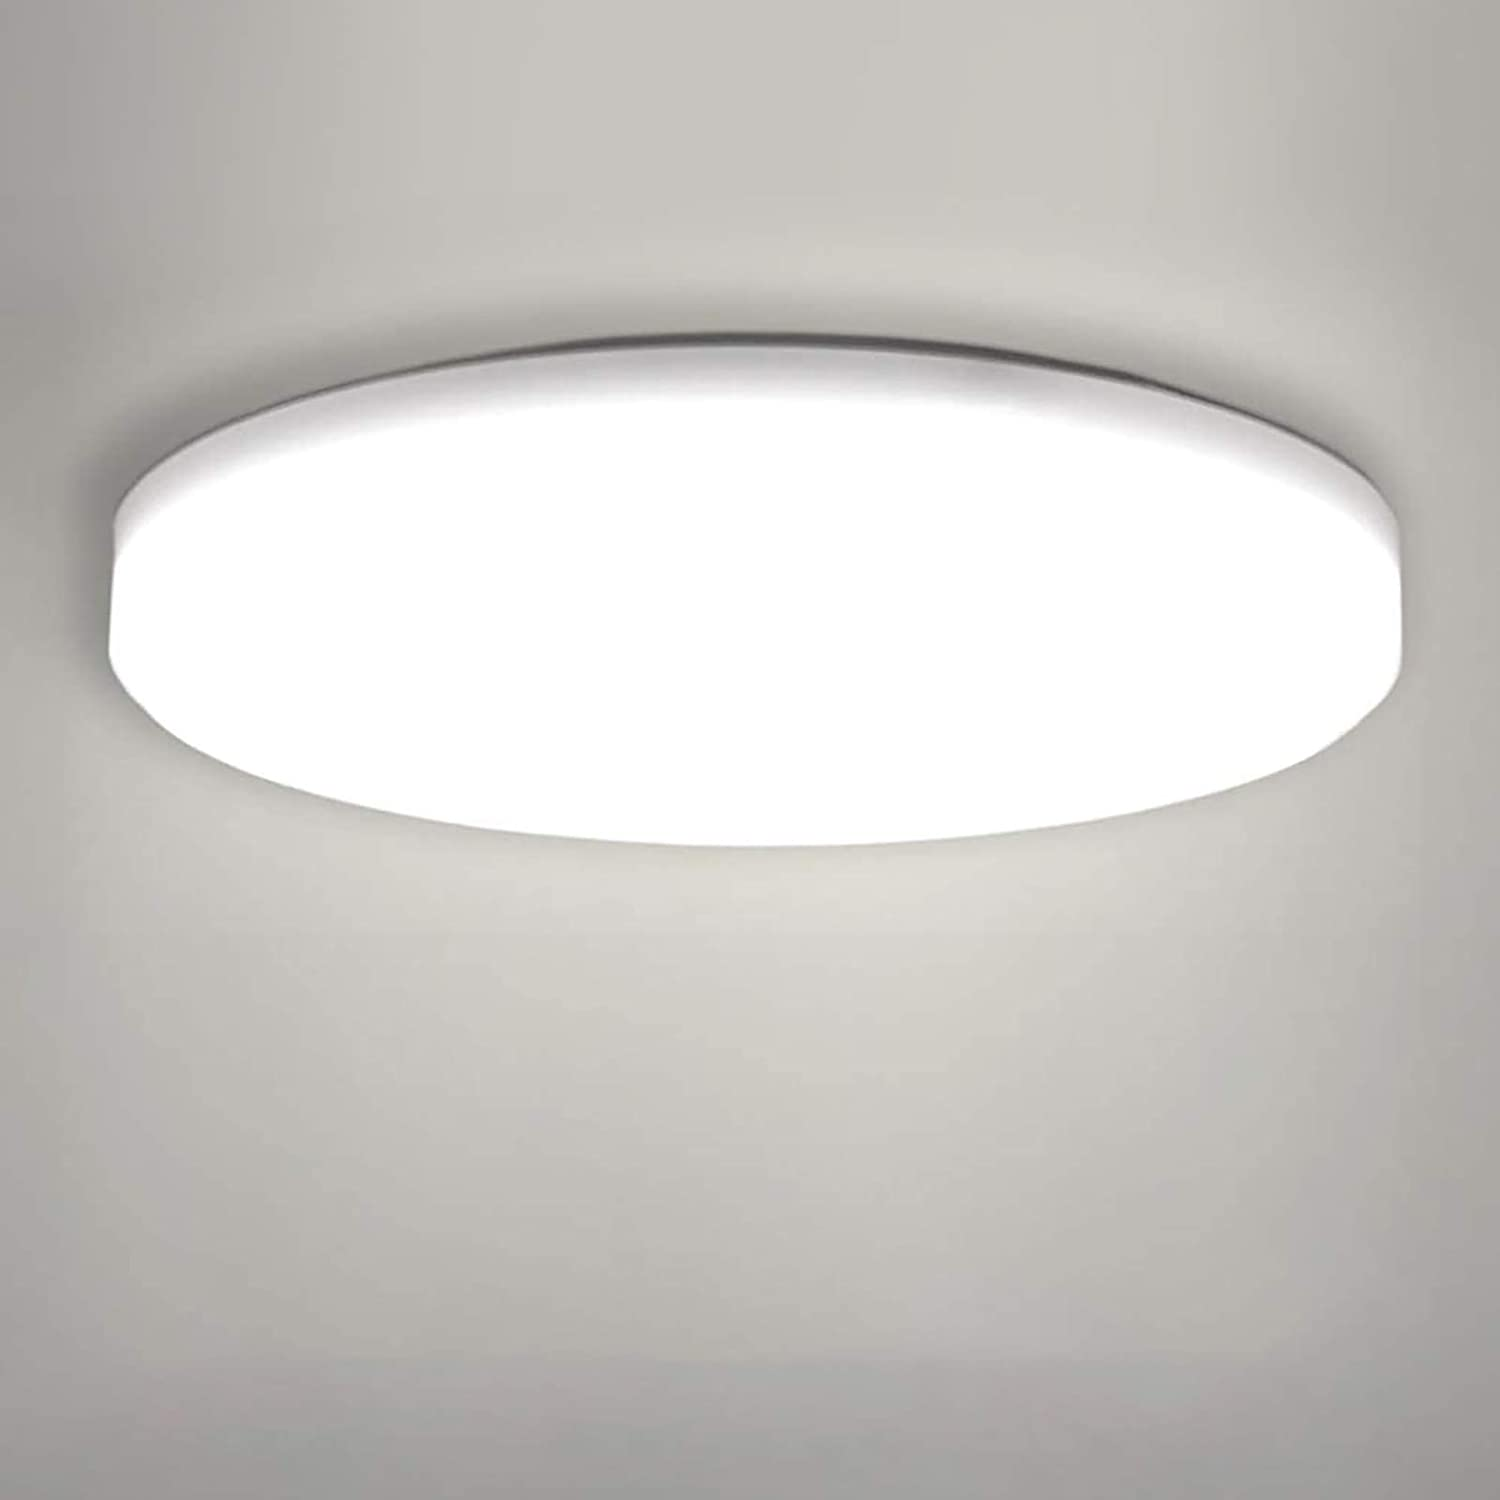 LED Ceiling Lamp, OOWOLF Modern 8W Led Ceiling Light Fixture Ultra Thin  8.8in 8LM 8K Natural White for Bathroom Bedroom Kitchen Living Room